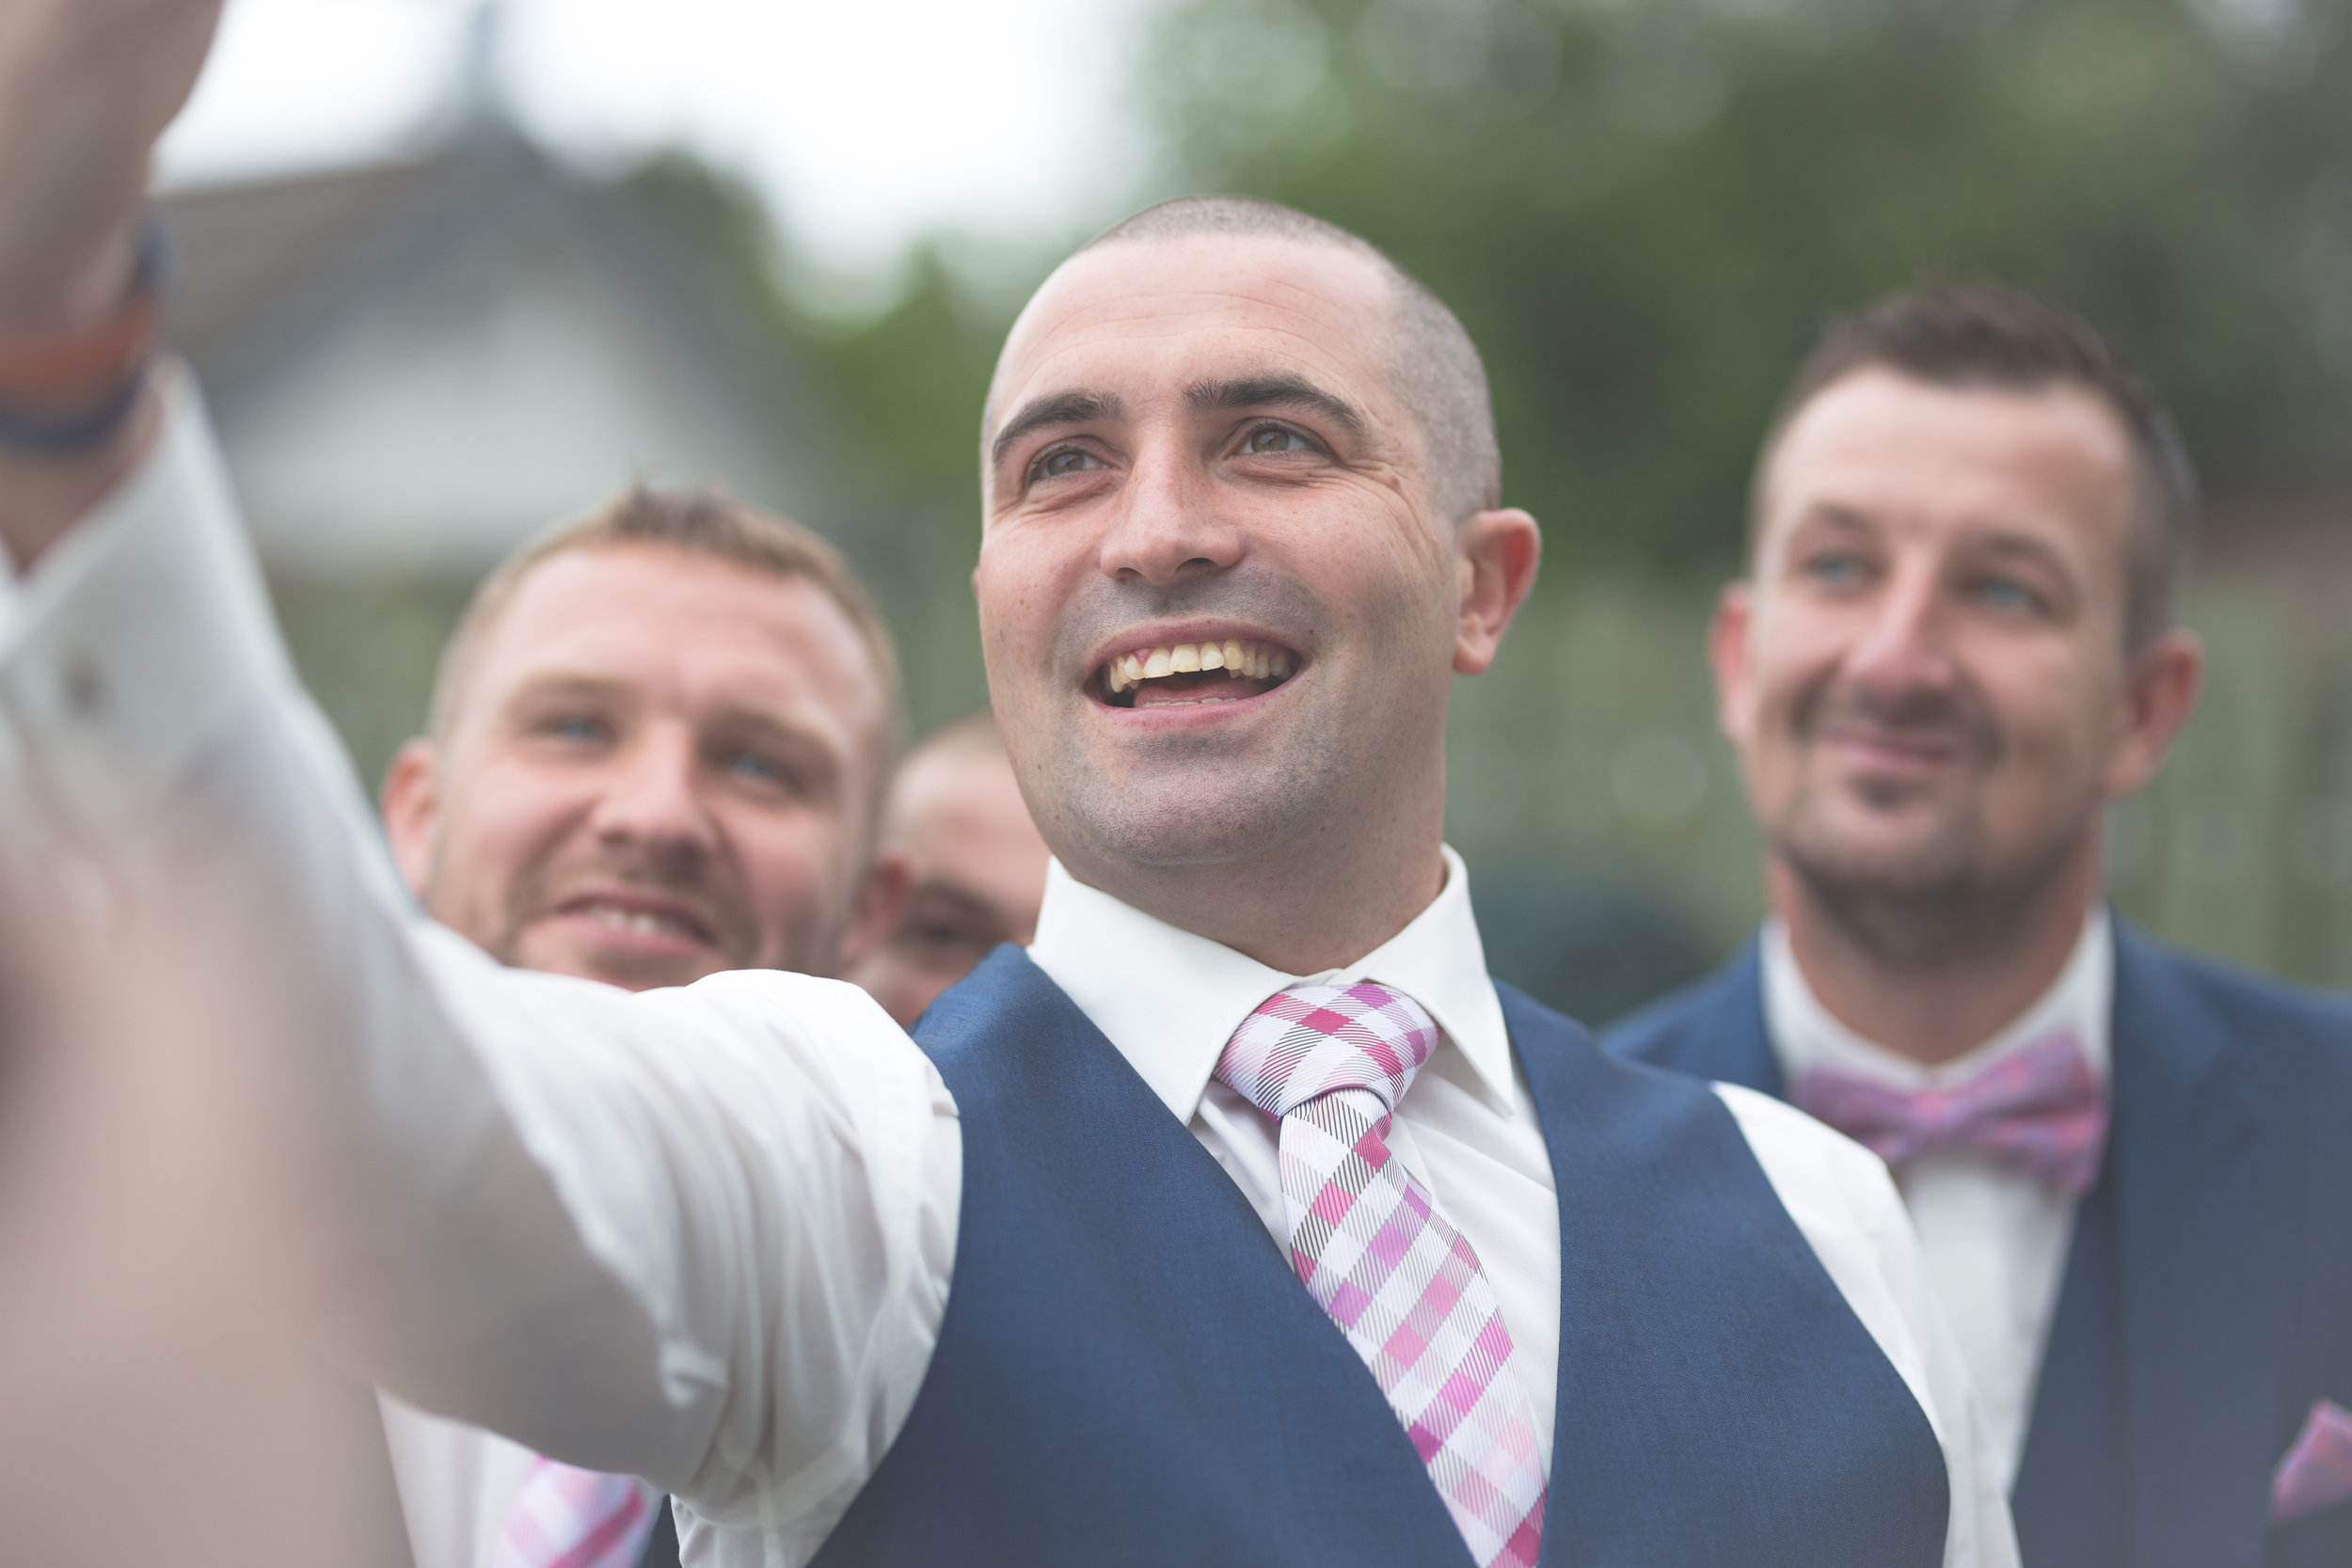 Antoinette & Stephen - Groom & Groomsmen | Brian McEwan Photography | Wedding Photographer Northern Ireland 70.jpg